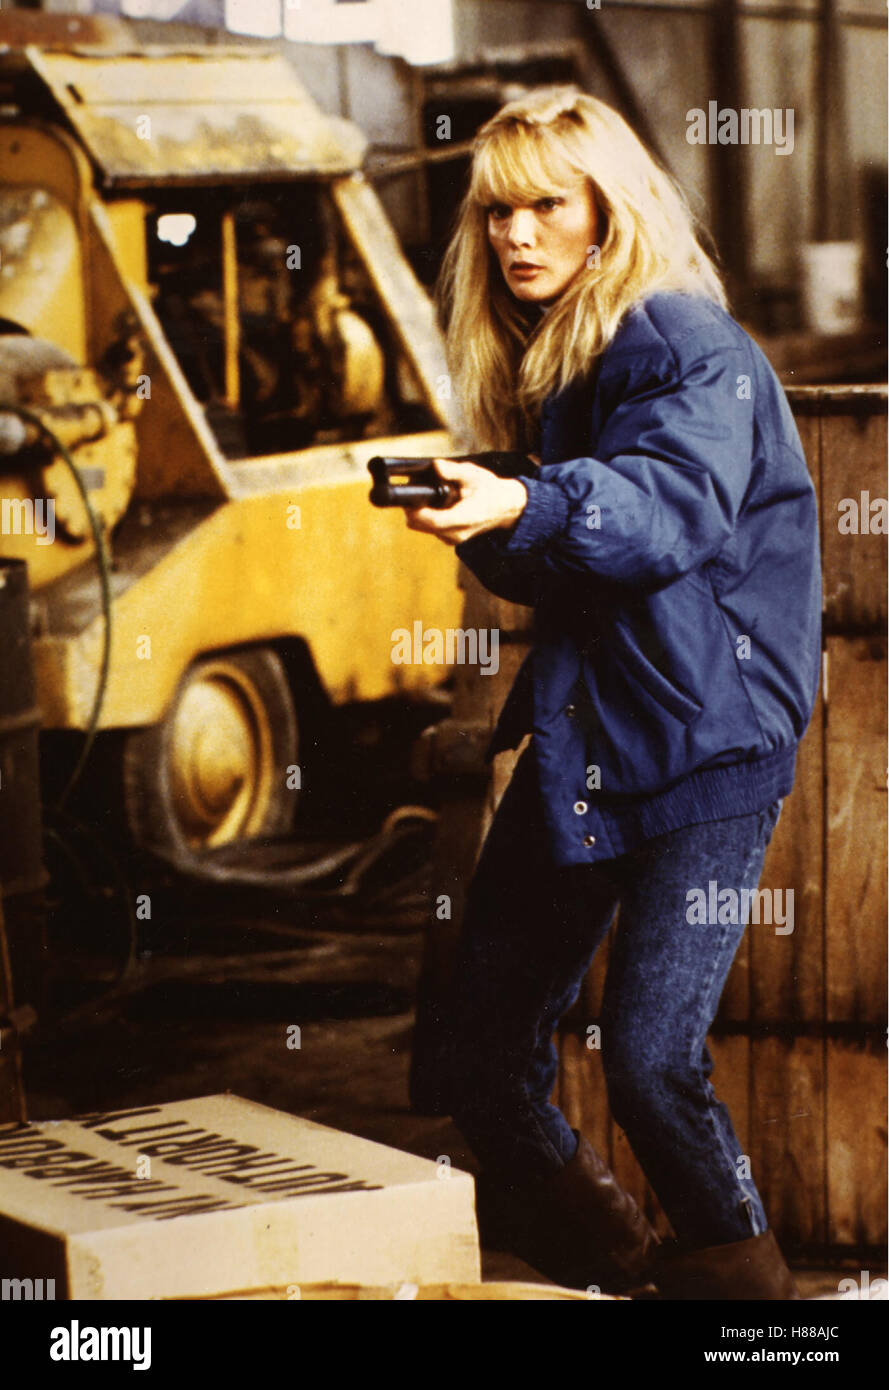 Maniac Cop, (MANIAC COP) USA 1987, Regie: William Lustig, LAURENE LANDON Stichwort: Gewehr - Stock Image